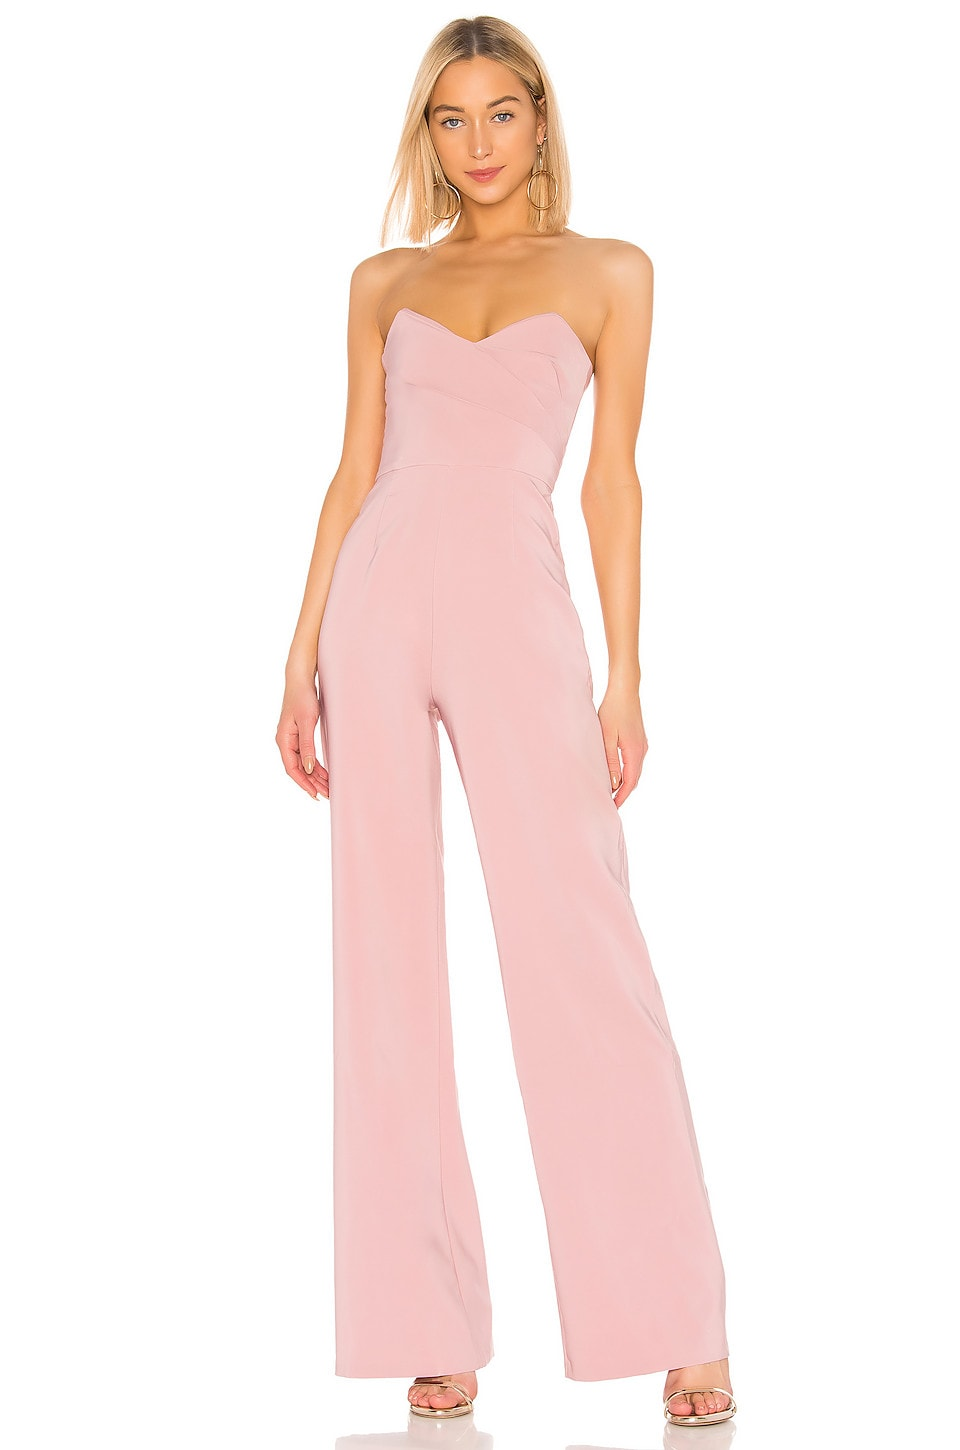 Nookie Bisous Jumpsuit in Dusty Pink